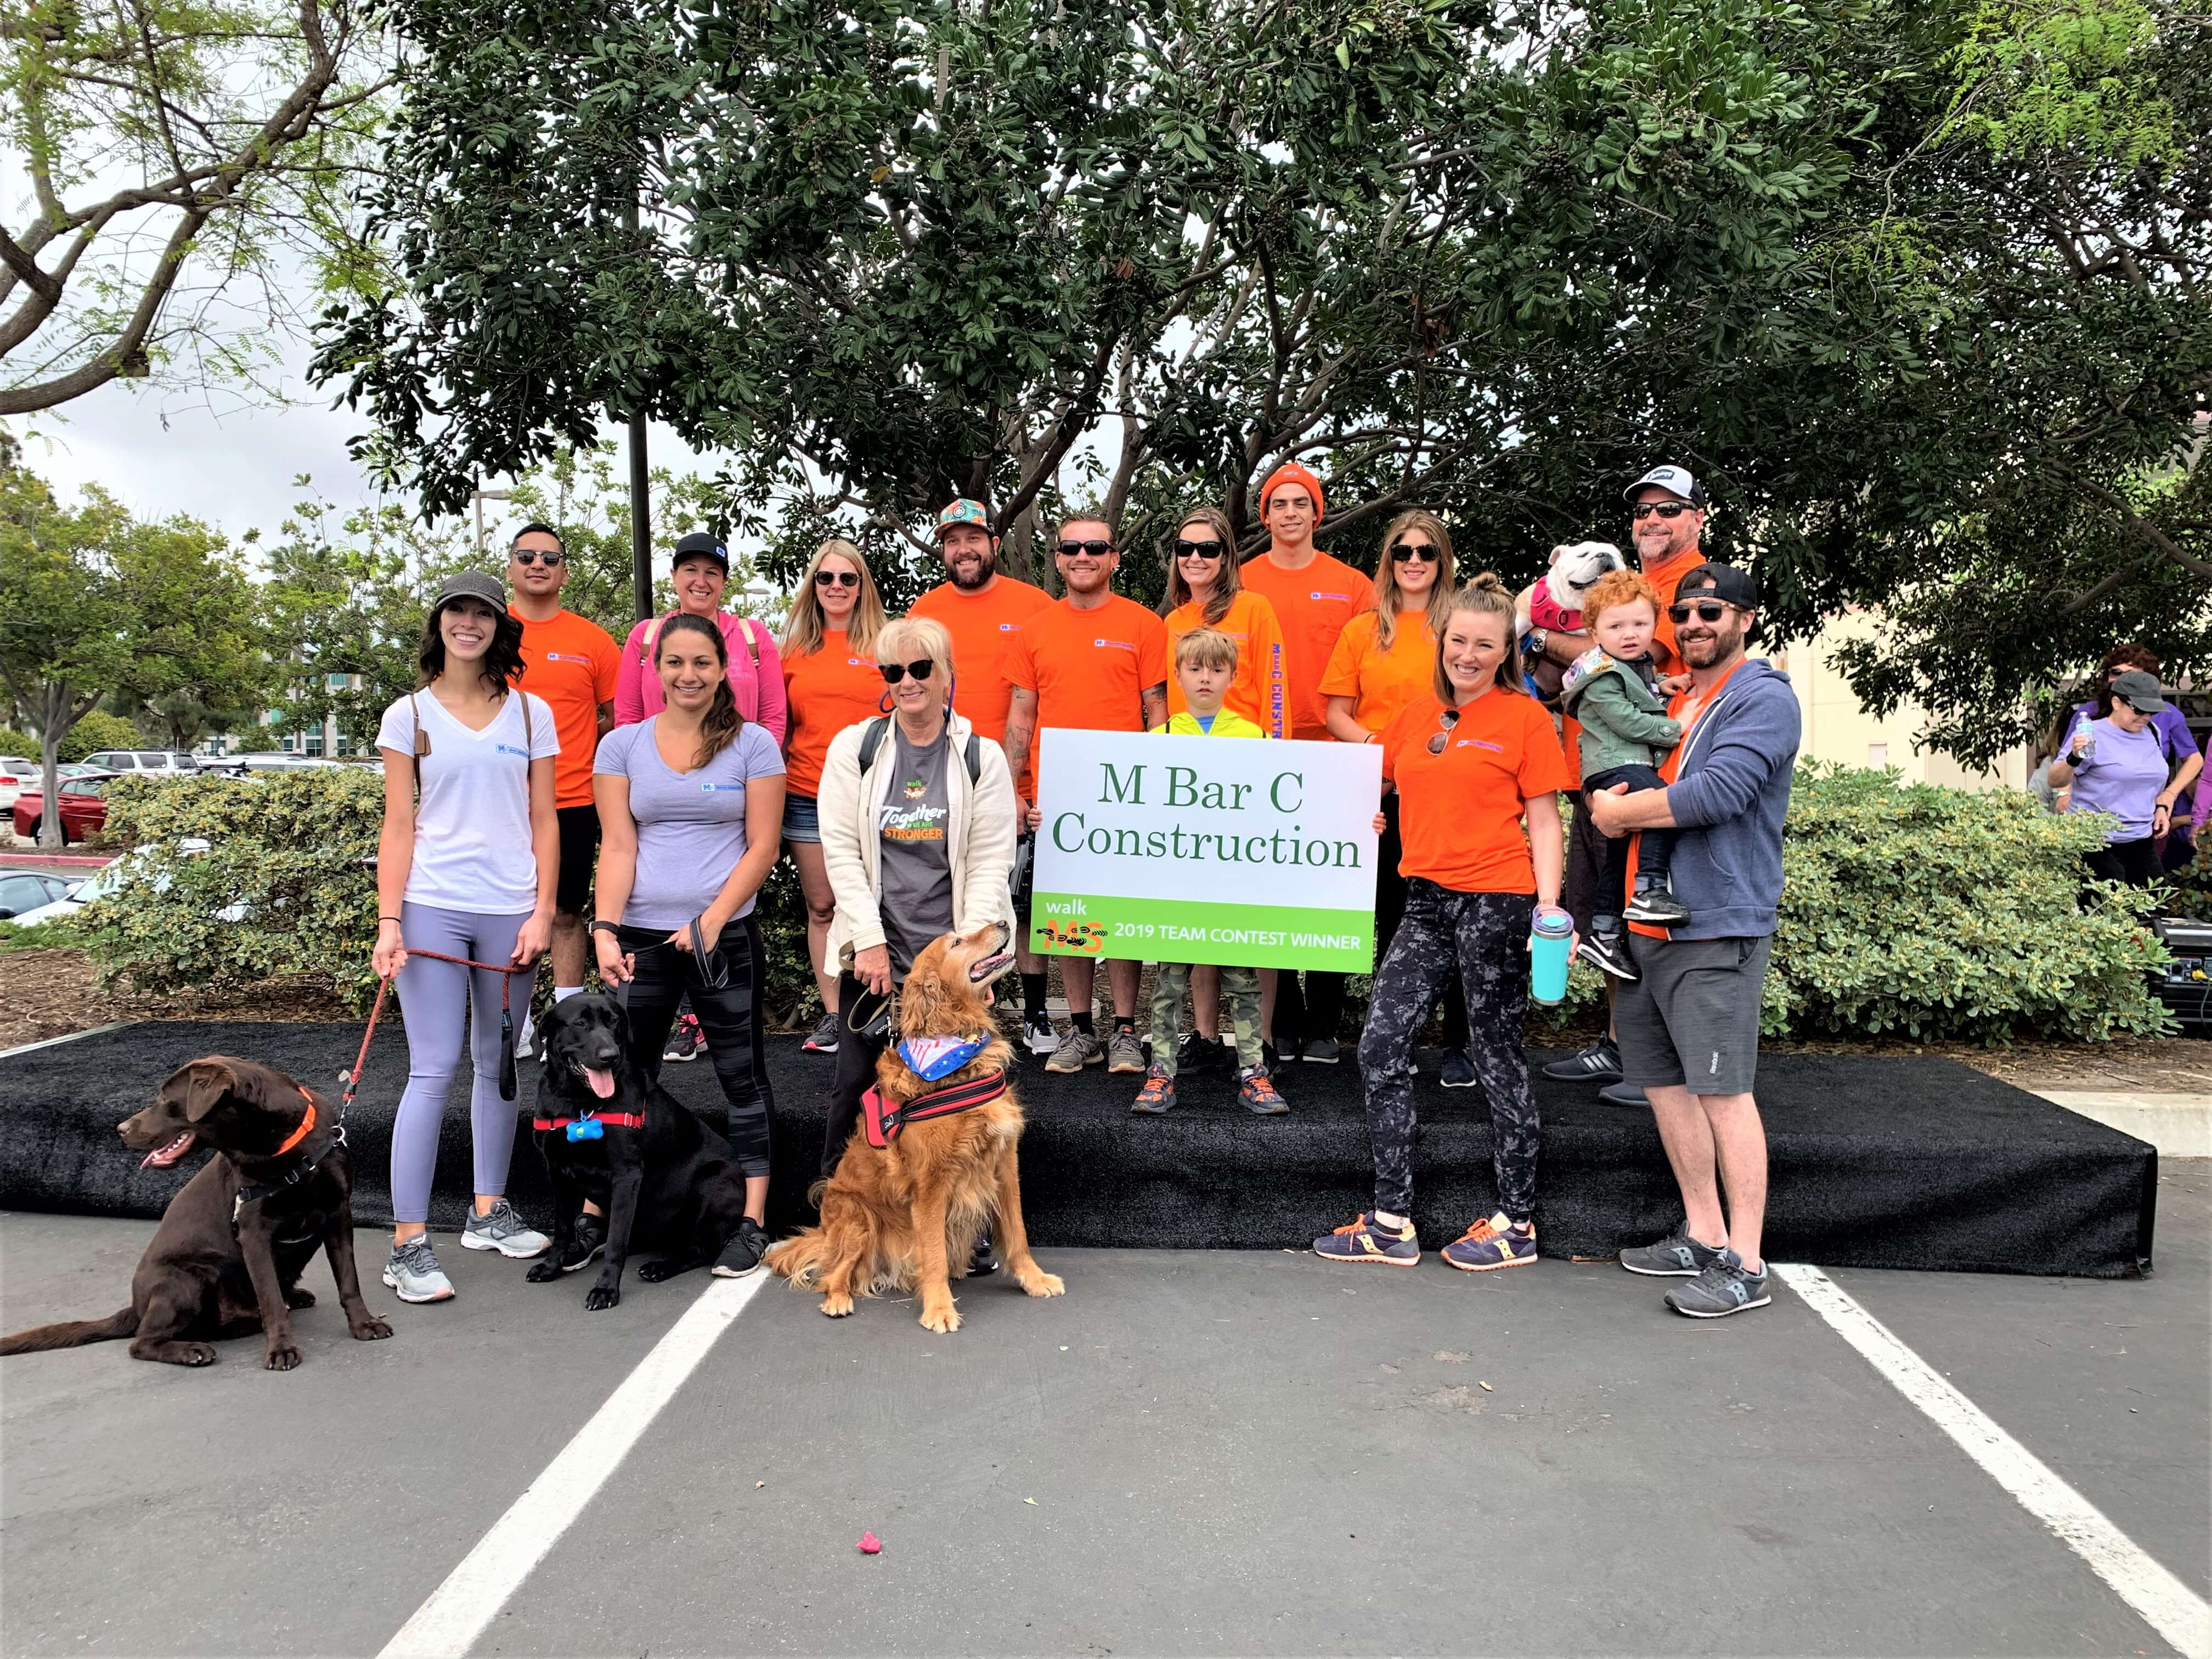 Thanks for coming out to the annual Carlsbad Walk MS event with M Bar C Construction